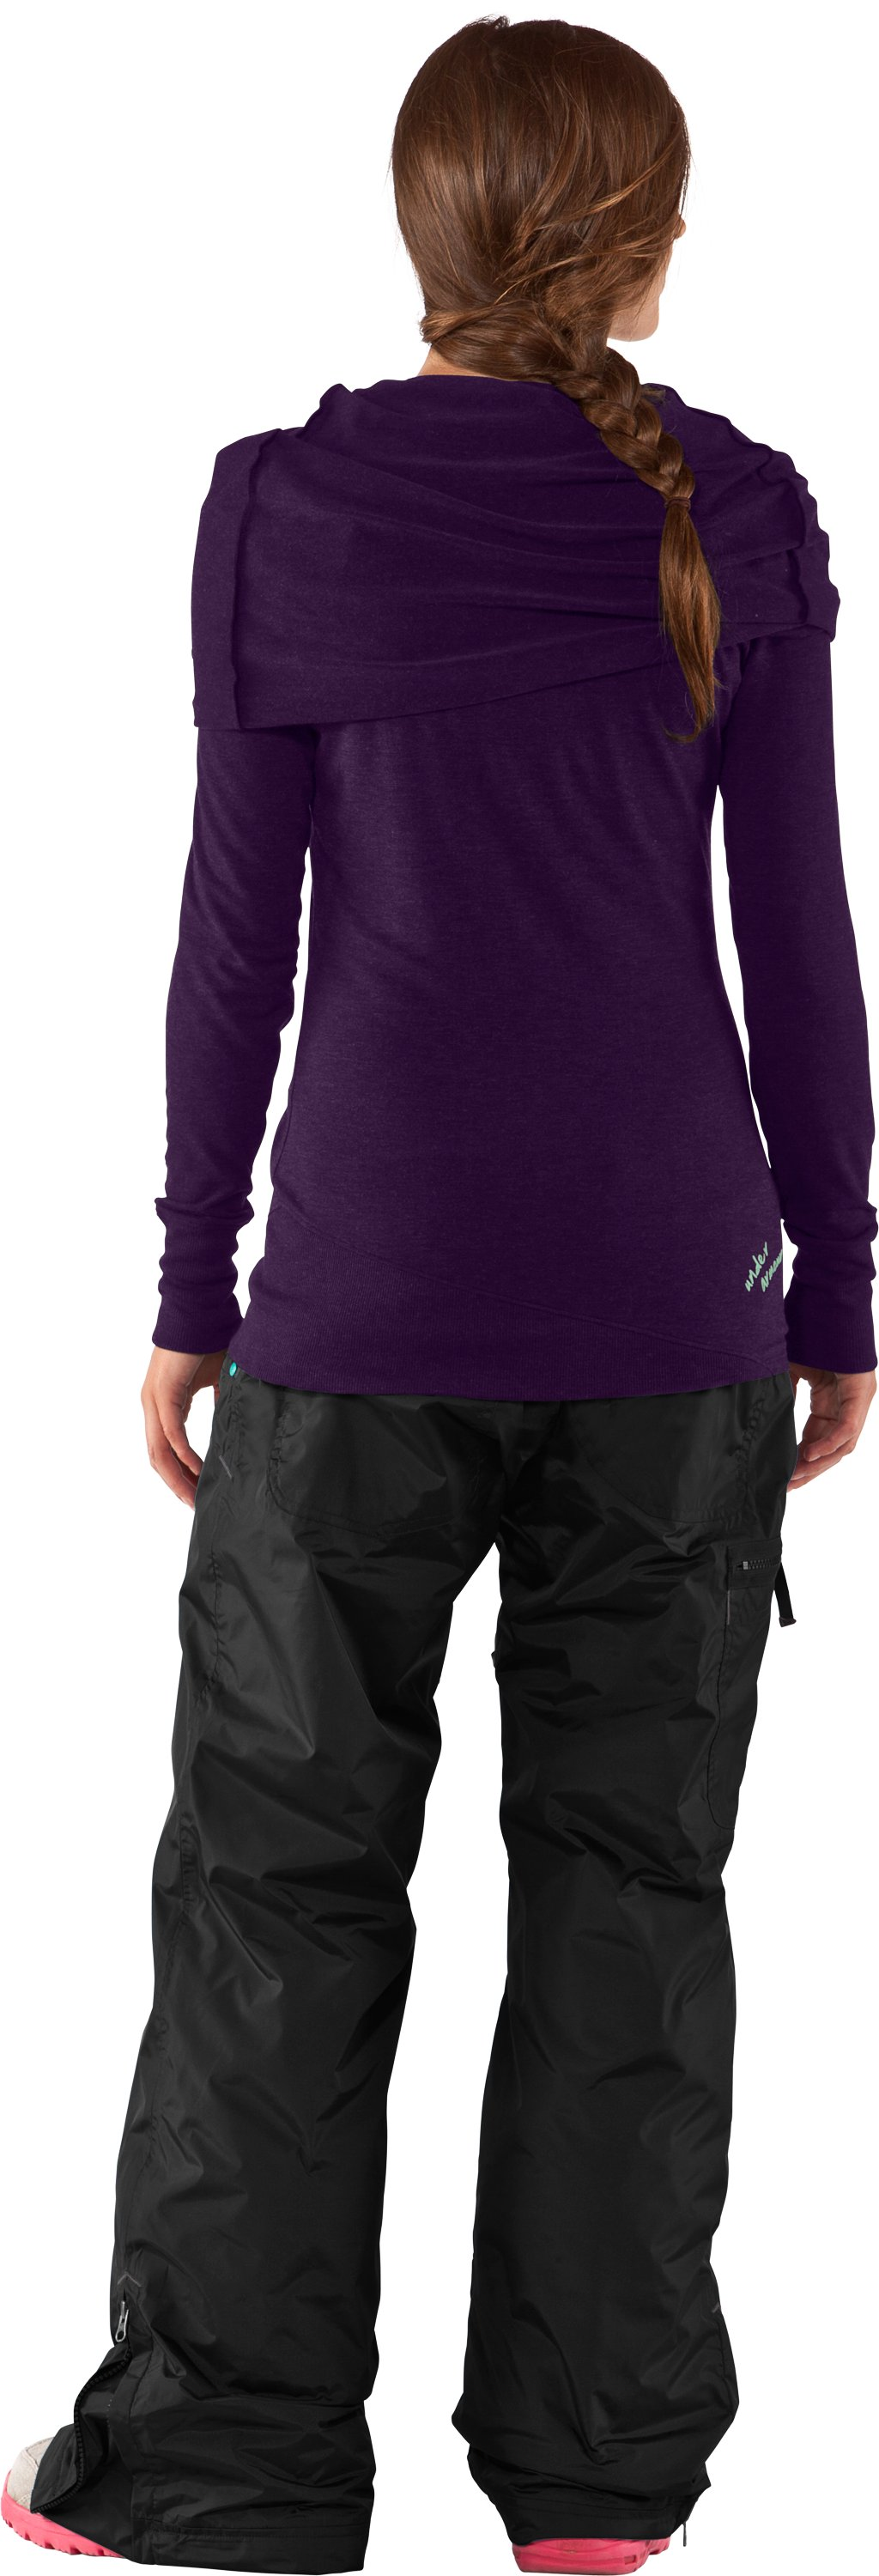 Women's Sheep's Clothing Hoodie, Purple Rain, Back